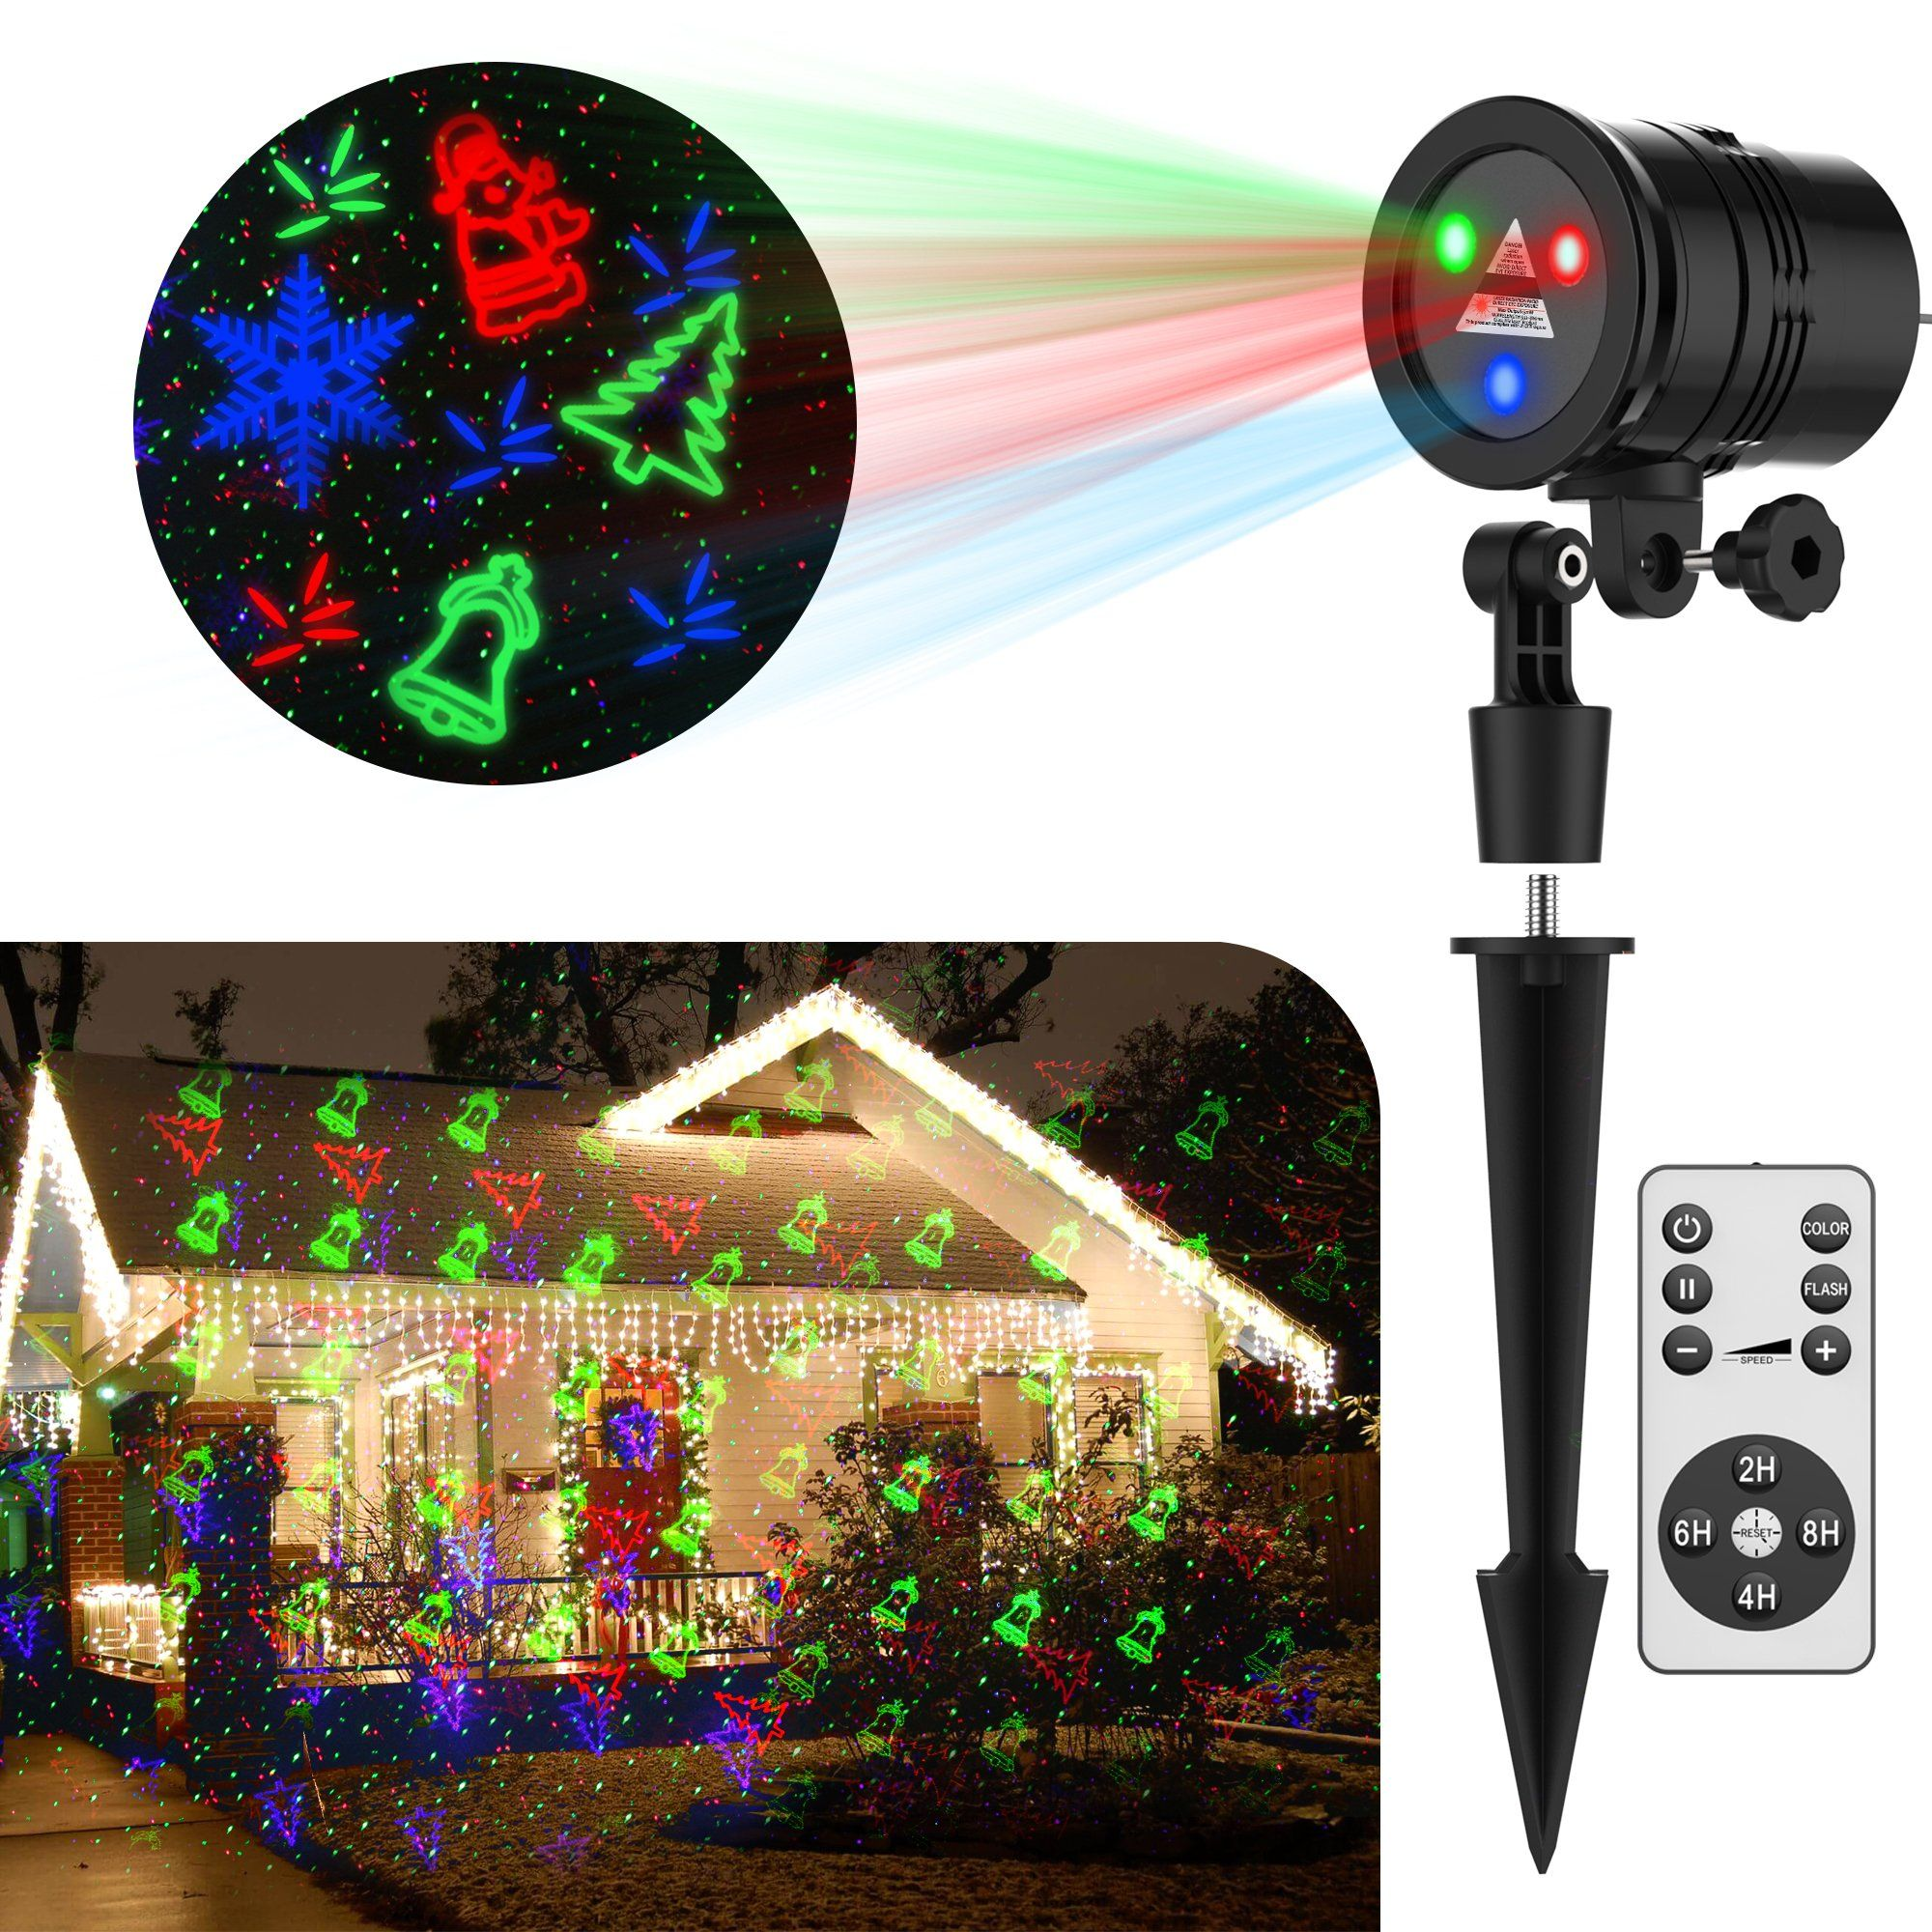 Frightening Halloween Decorations GameWill Laser